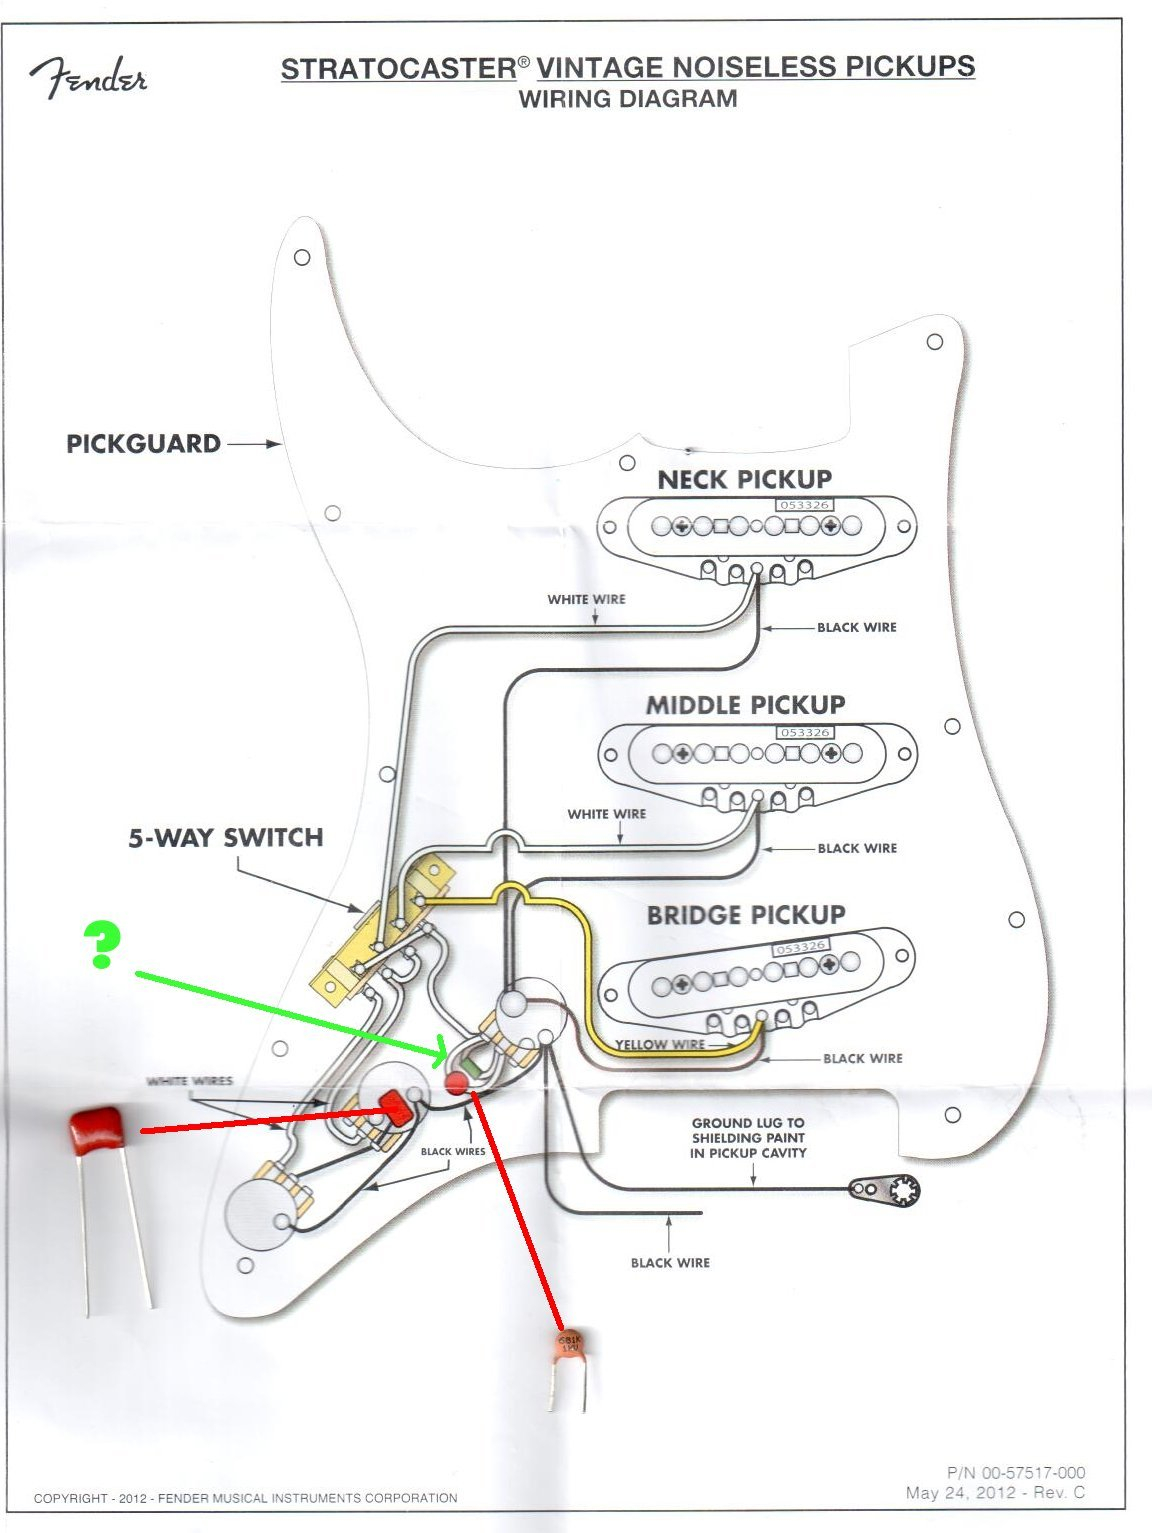 fender hot noiseless wiring diagram Collection-fender vintage noiseless pickups wiring diagram Unique Amazing Wiring Diagrams For Fender Classic 50s Player With 5-t